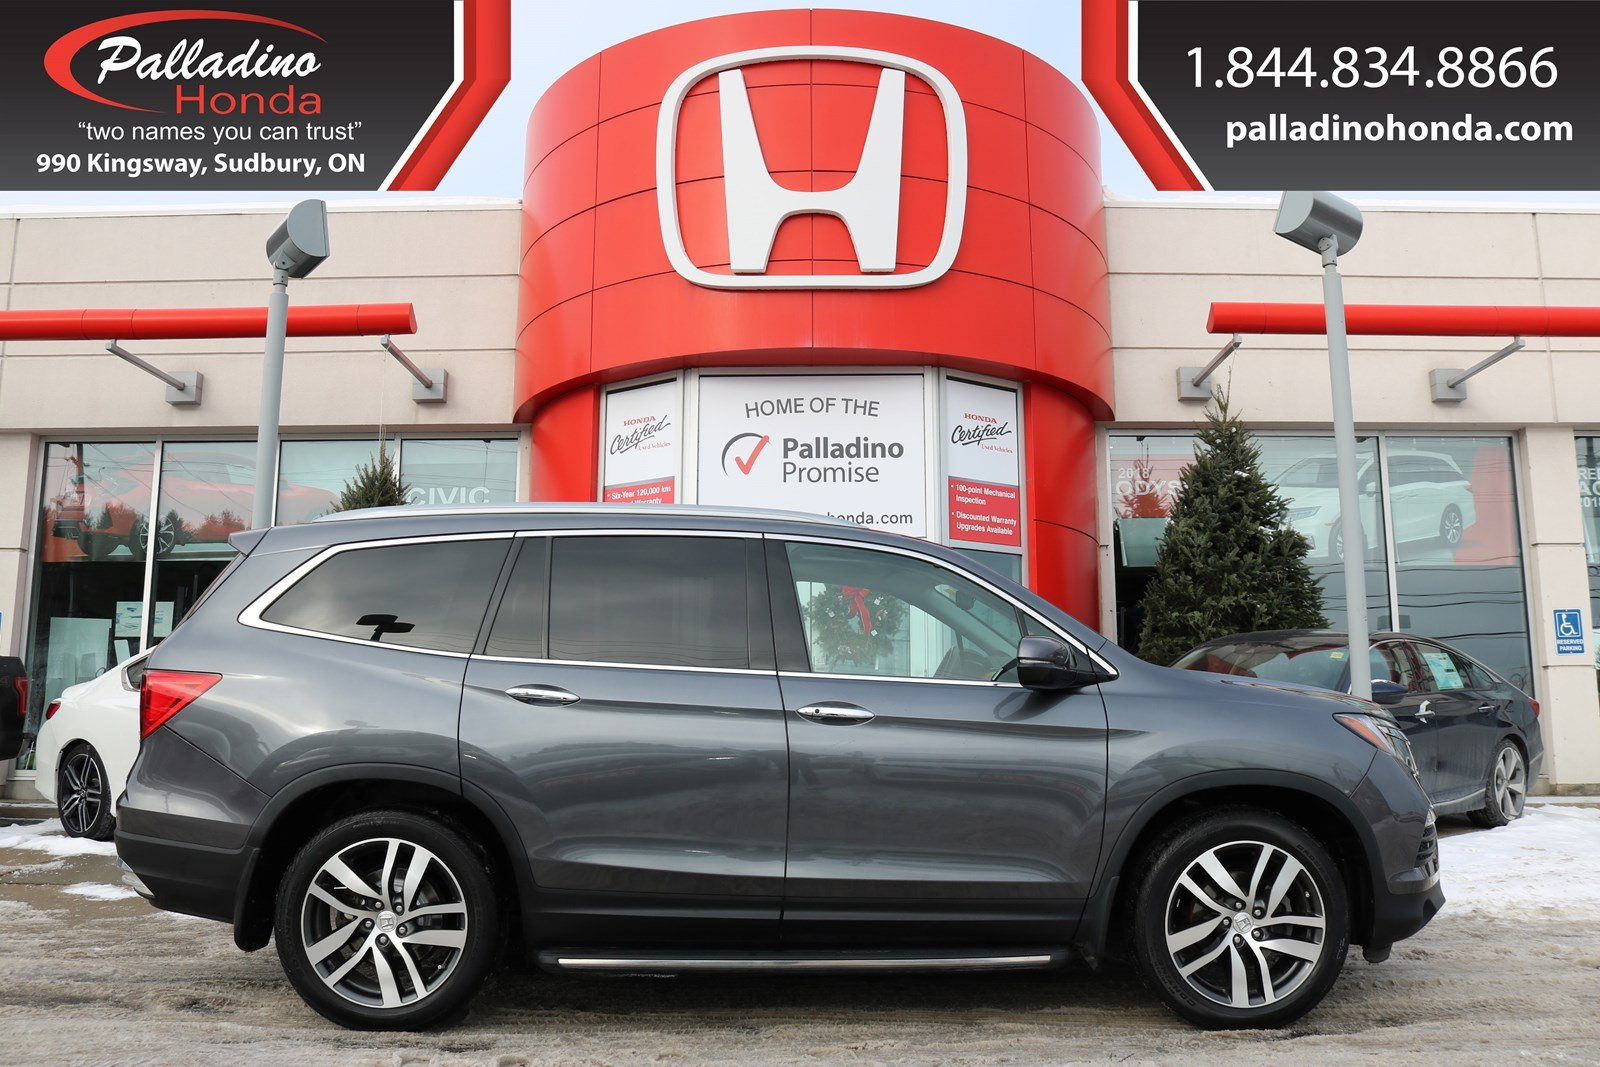 Pre-Owned 2016 Honda Pilot Touring - ONE OWNER - NEW REAR BRAKES - NAVIGATION & BACK UP CAM -